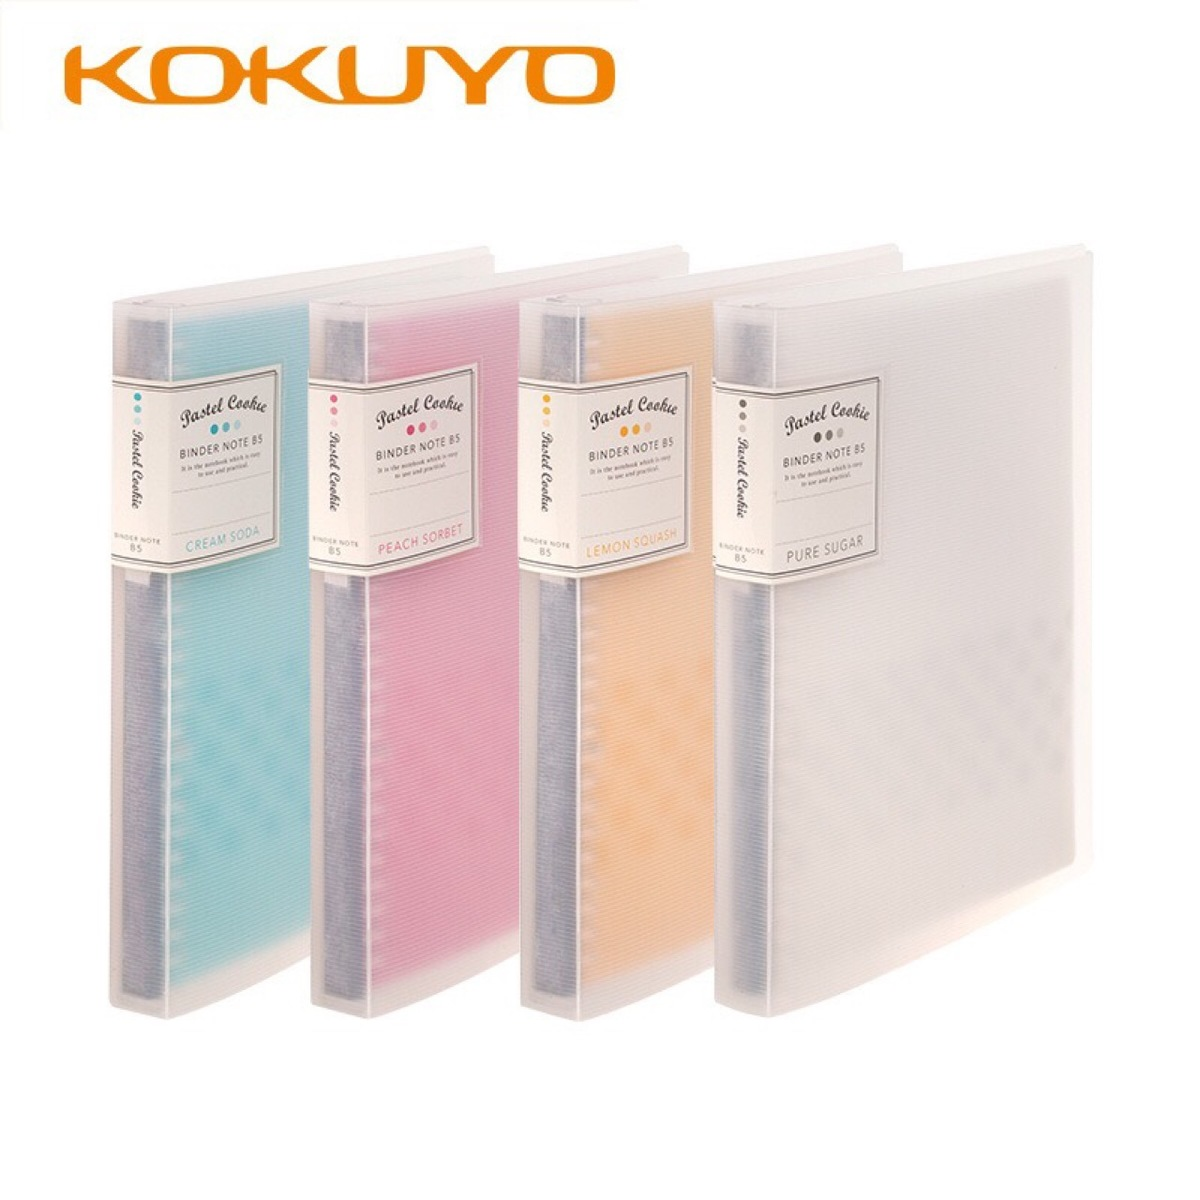 KOKUYO A5 B5 Removable Loose Leaf Notebook Refill Spiral Binder Planner Inner Page Inside Paper Dairy Weekly Monthly Plan Line a5 a6 a7 muji style blank black paper loose leaf notebook spiral inner page refill note book journal travel planner dairy diary